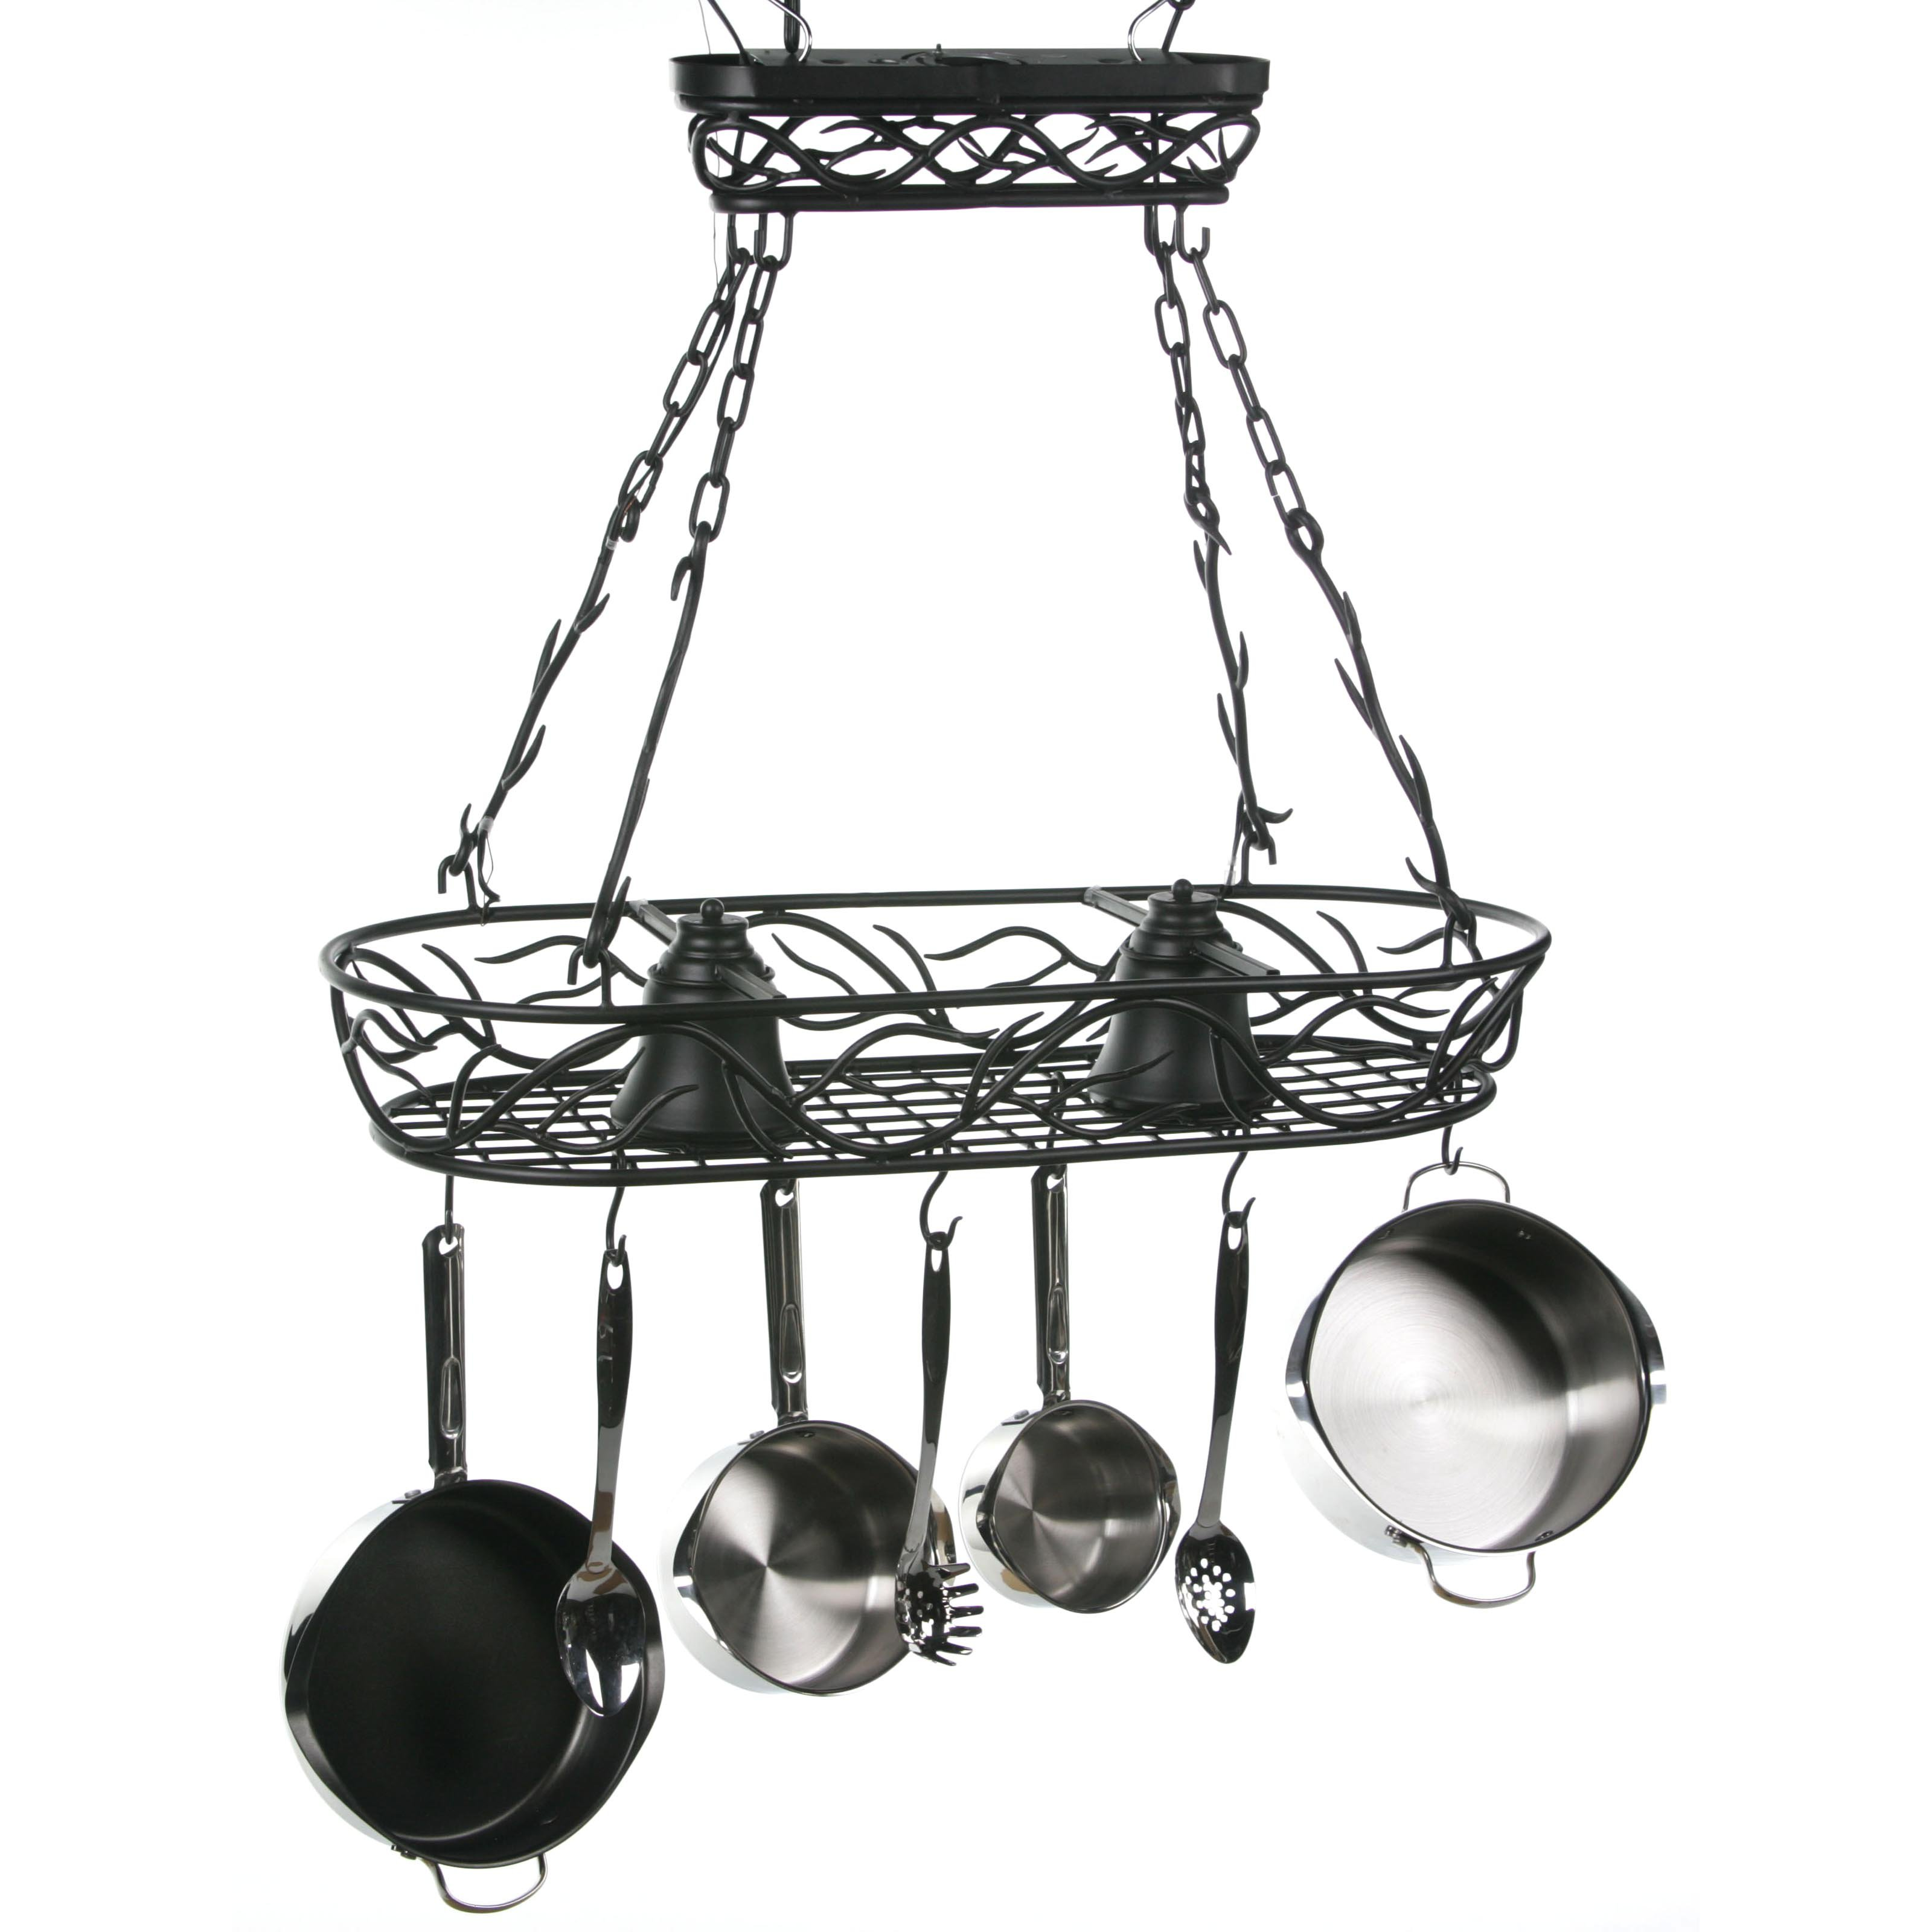 Twig Pot Rack with Lights